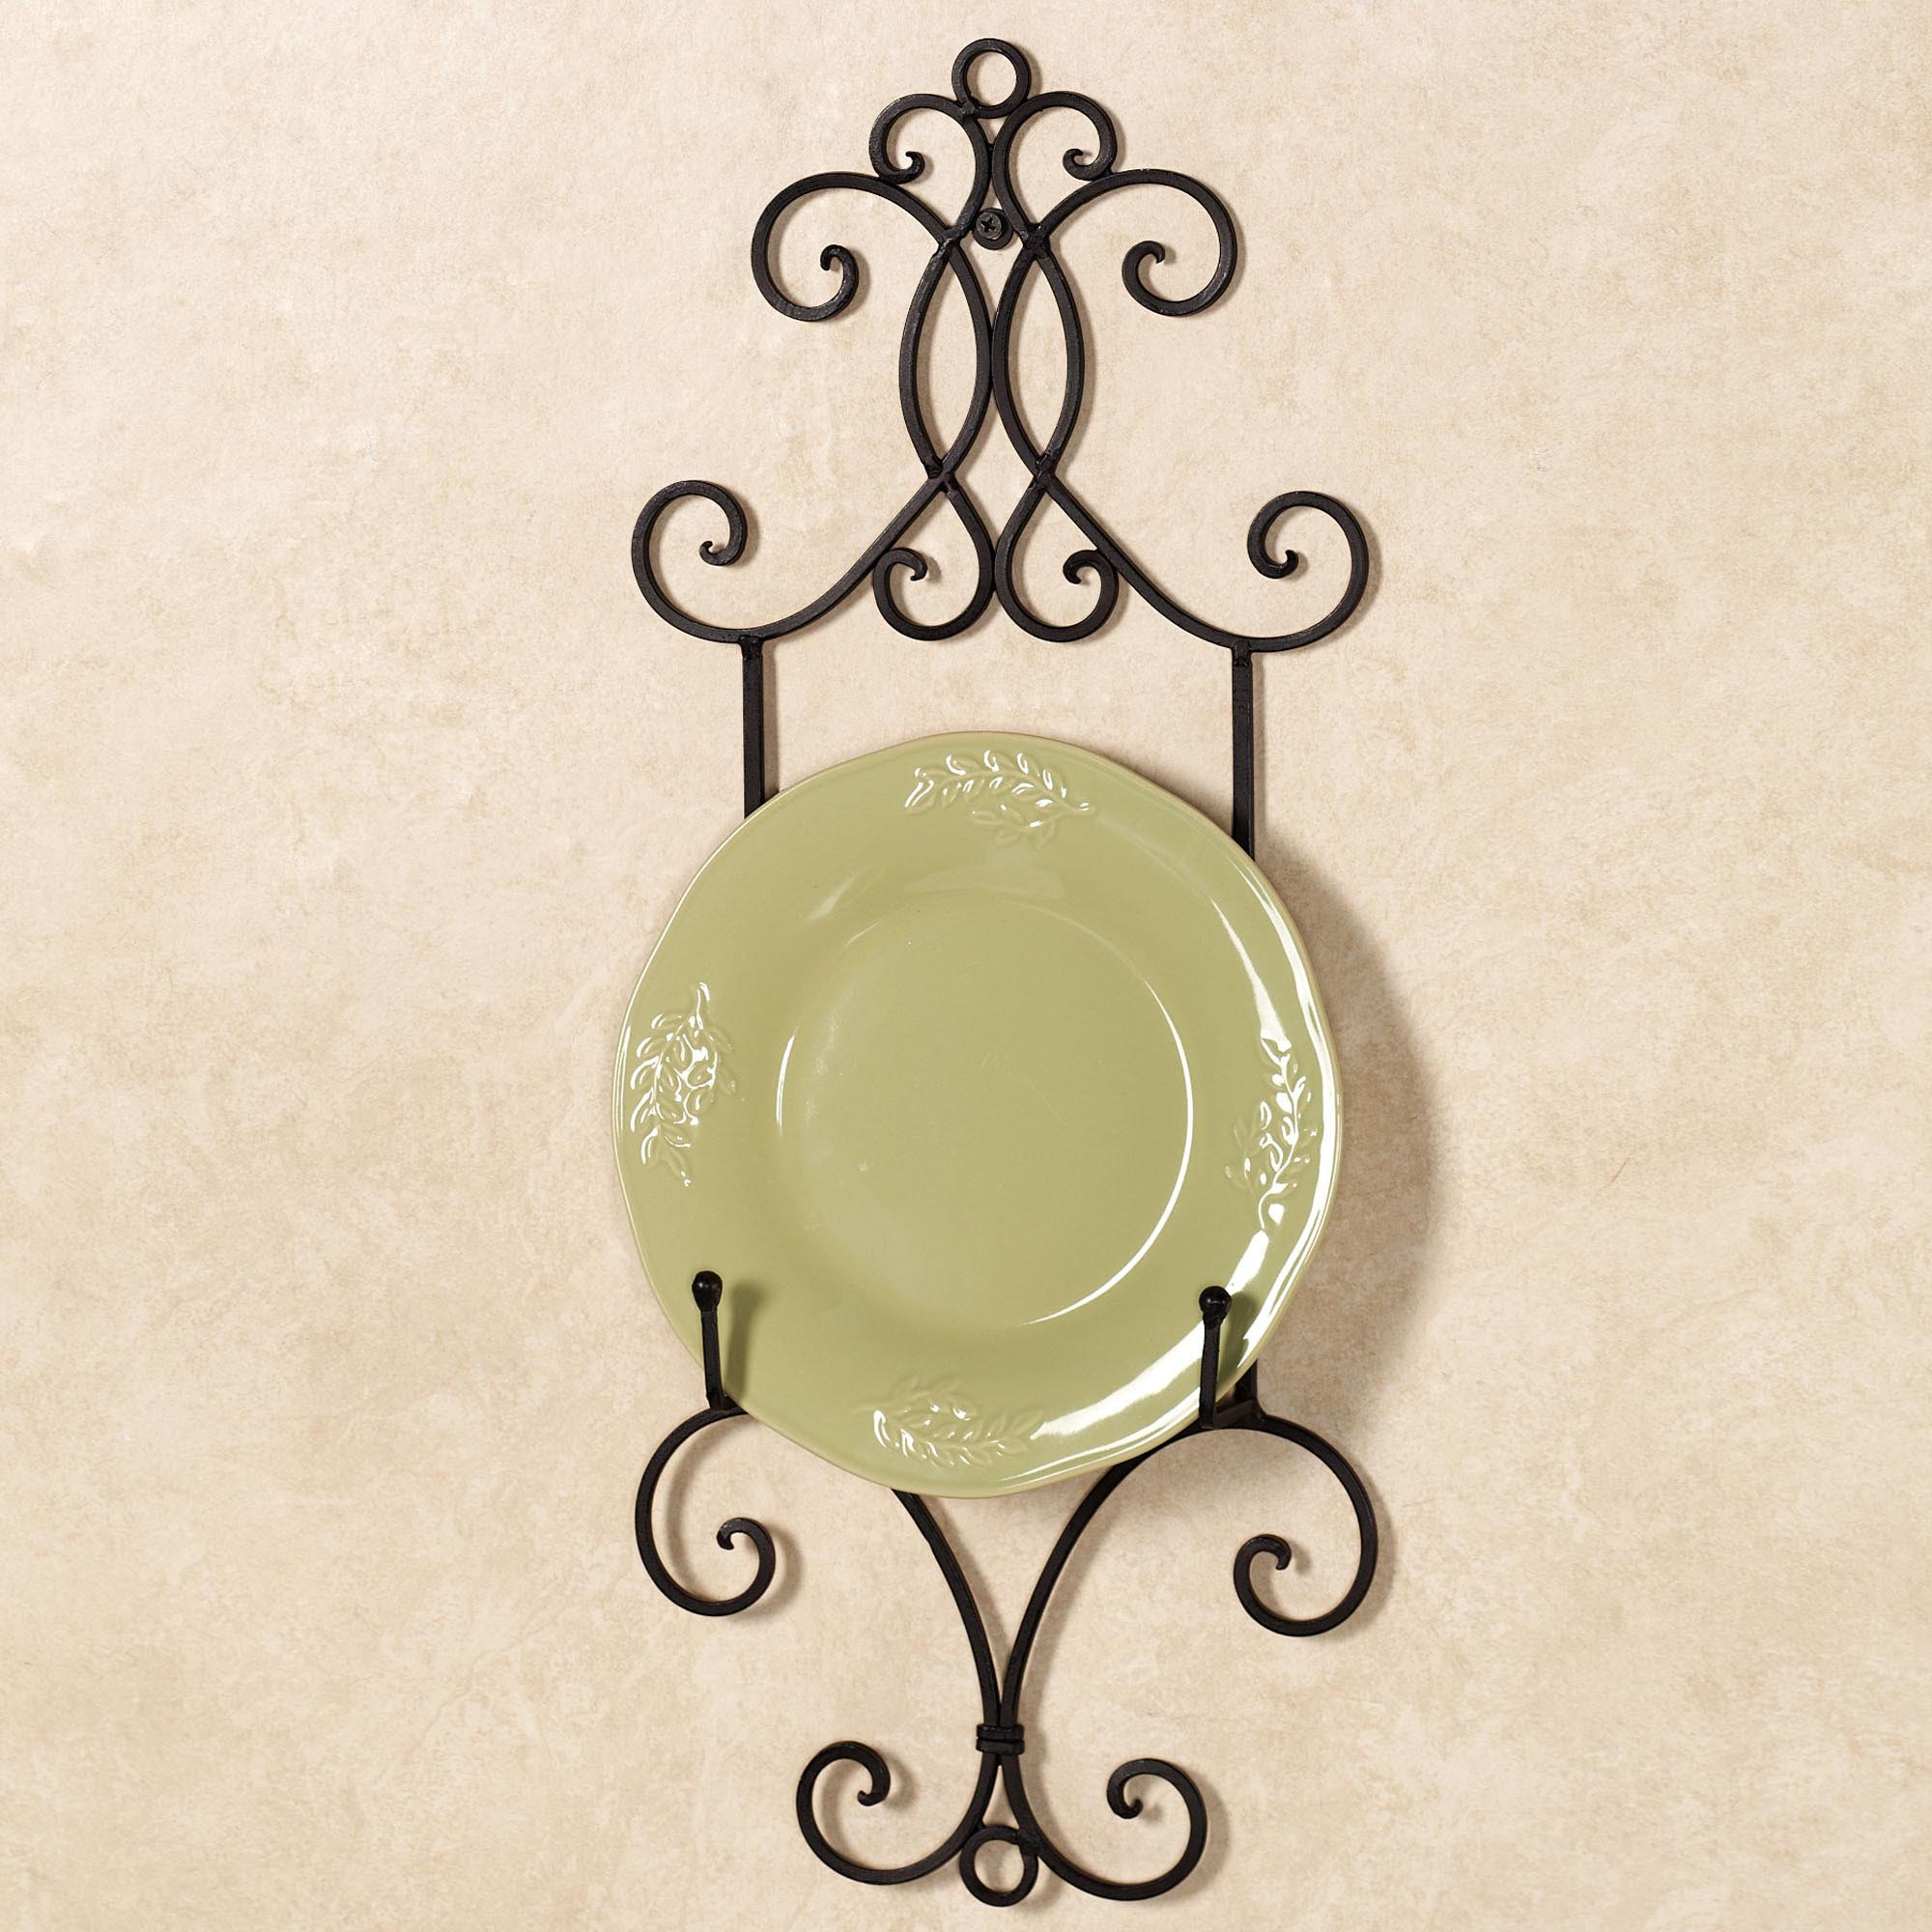 Decorative Plates for Wall Display